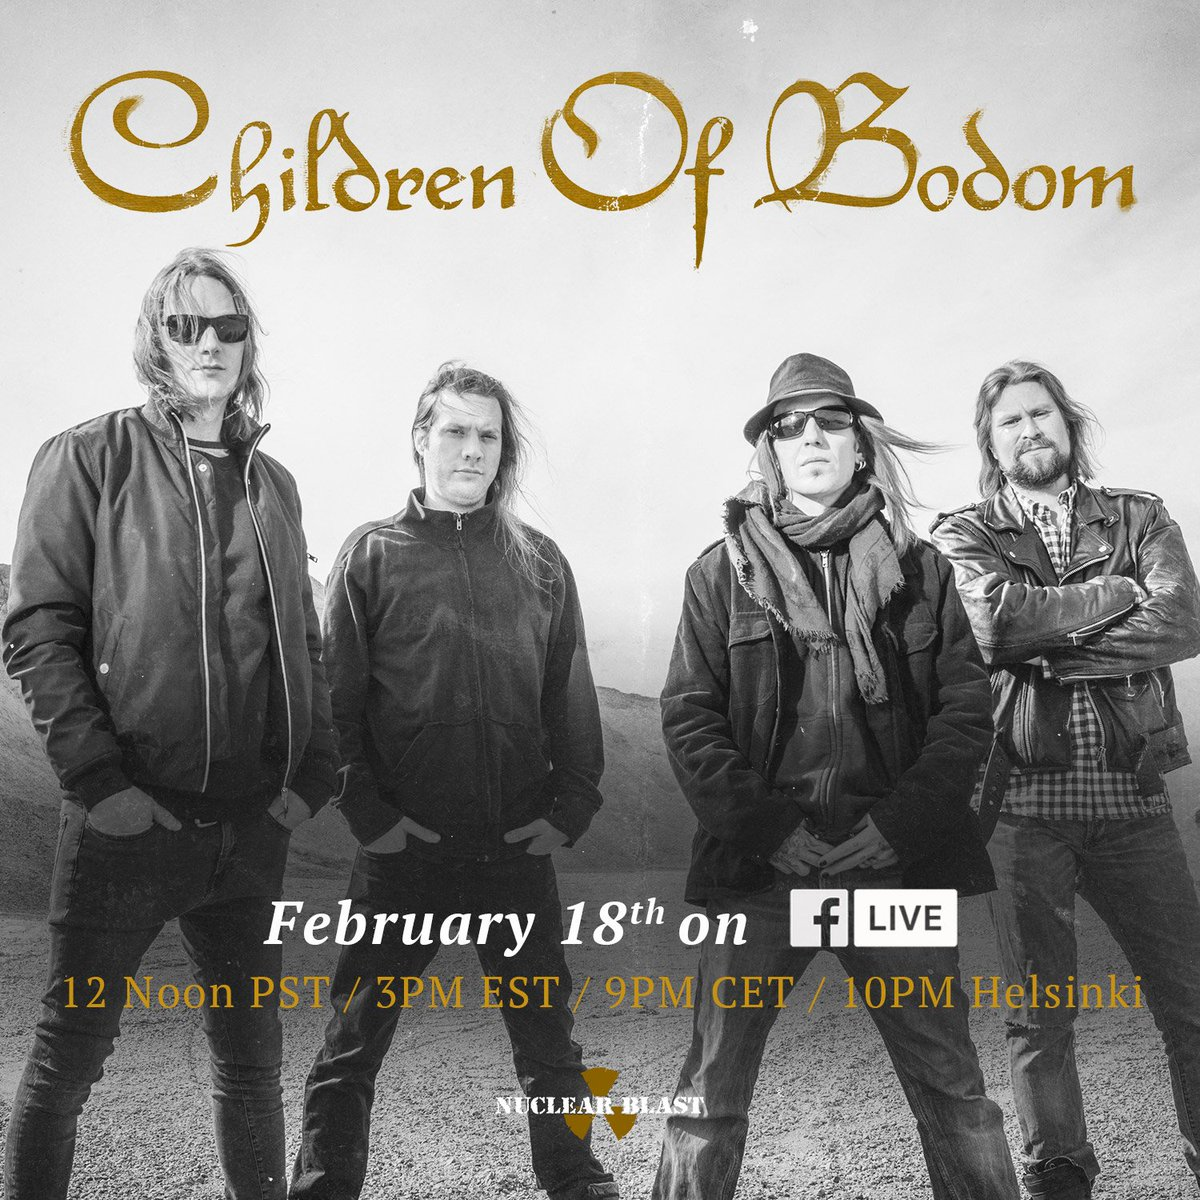 We are going to be doing Facebook Live event talking about the recording of the new album and answering your questions!  Tune in to https://t.co/Ve8lPppPiF February 18th at 12 Noon PST / 3PM EST / 9PM CET / 10PM Helsinki  Chat then ;) https://t.co/WEjczzX45j